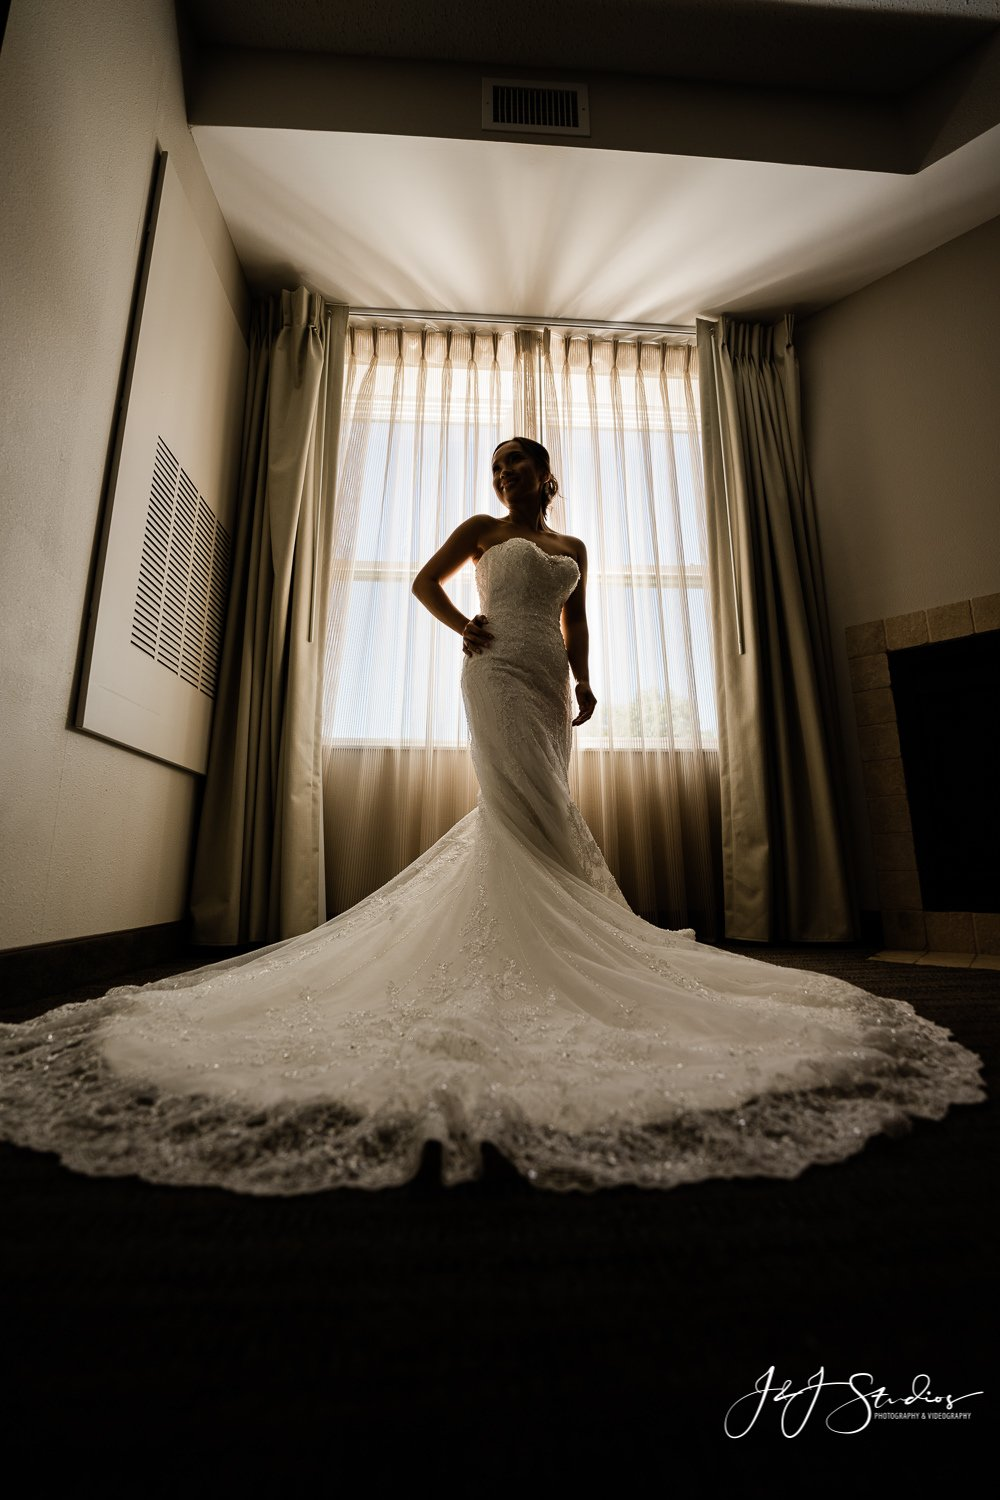 silhouette of bride by window baltimore wedding photographer